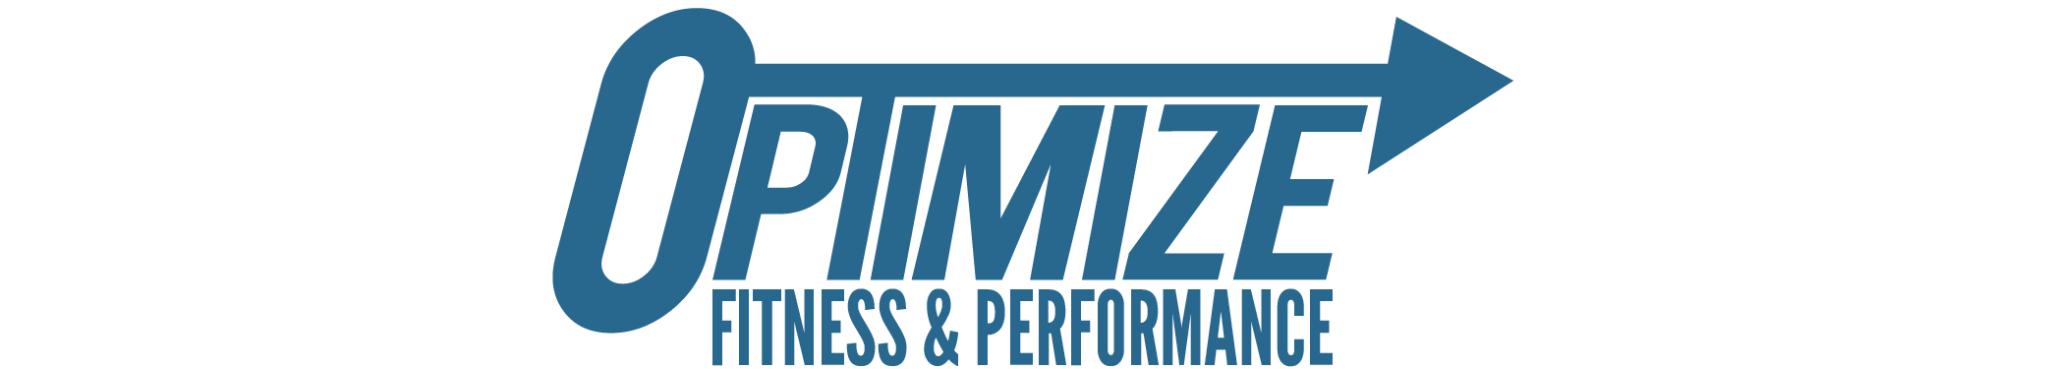 Optimize Fitness & Performance